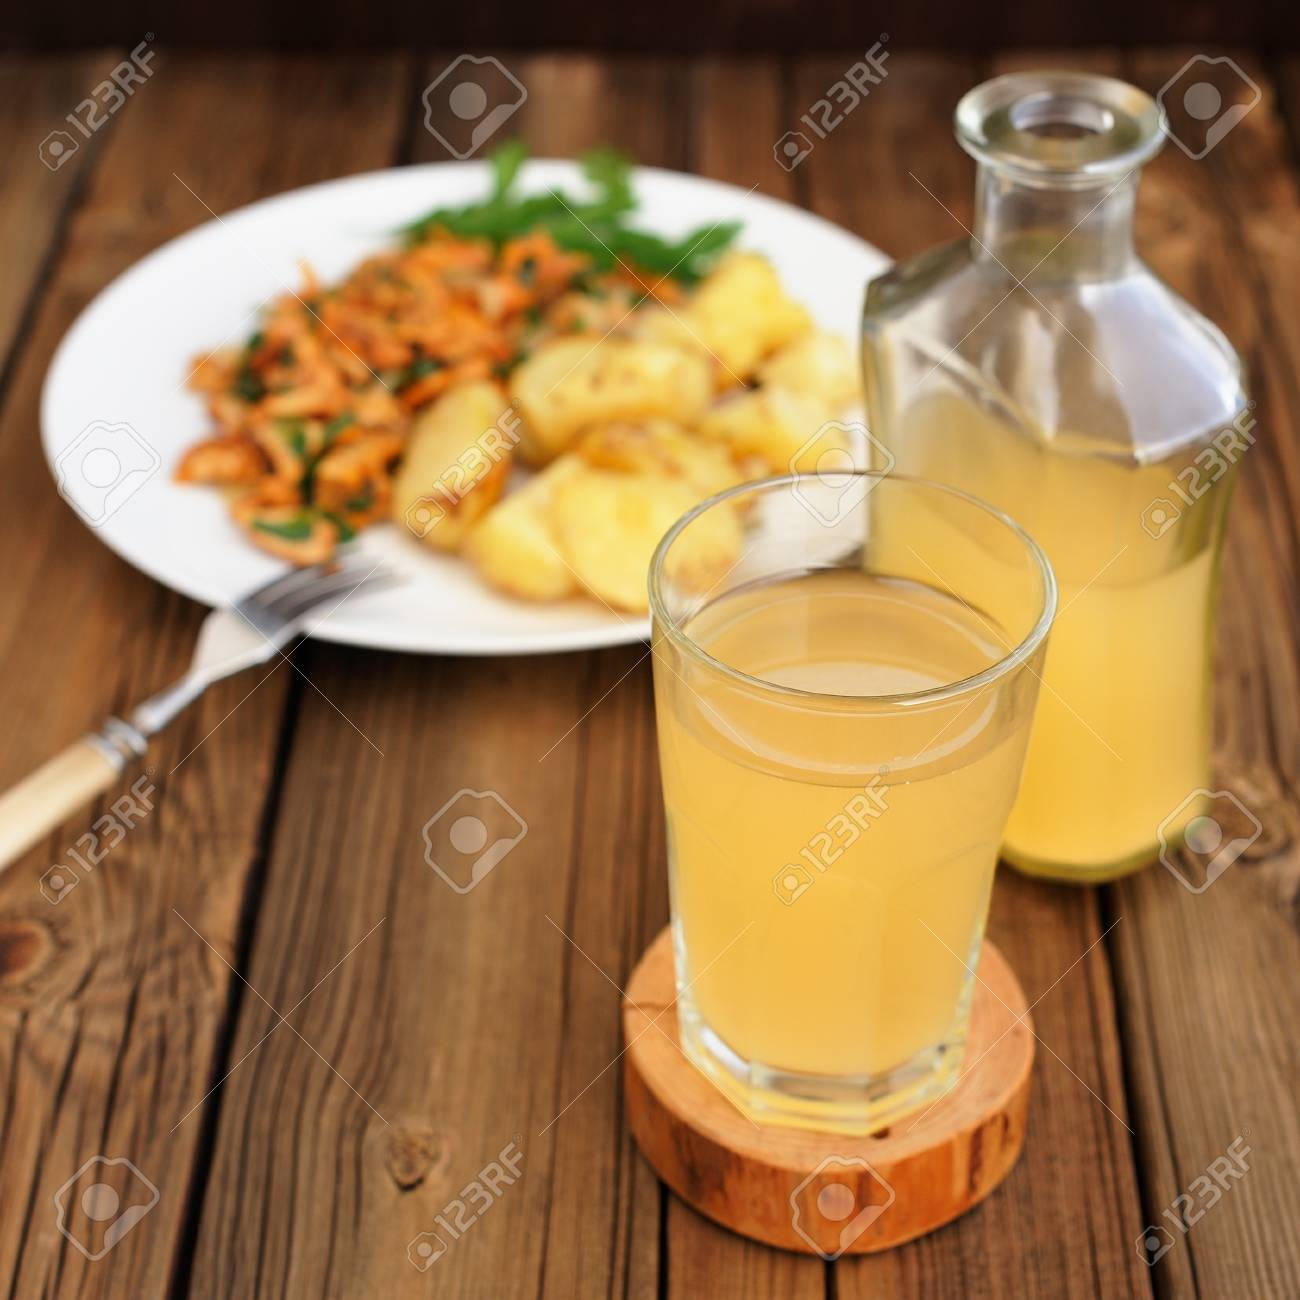 Kvass - cold Russian beverage of rye bread - in glass and bottle with  roasted potatoes